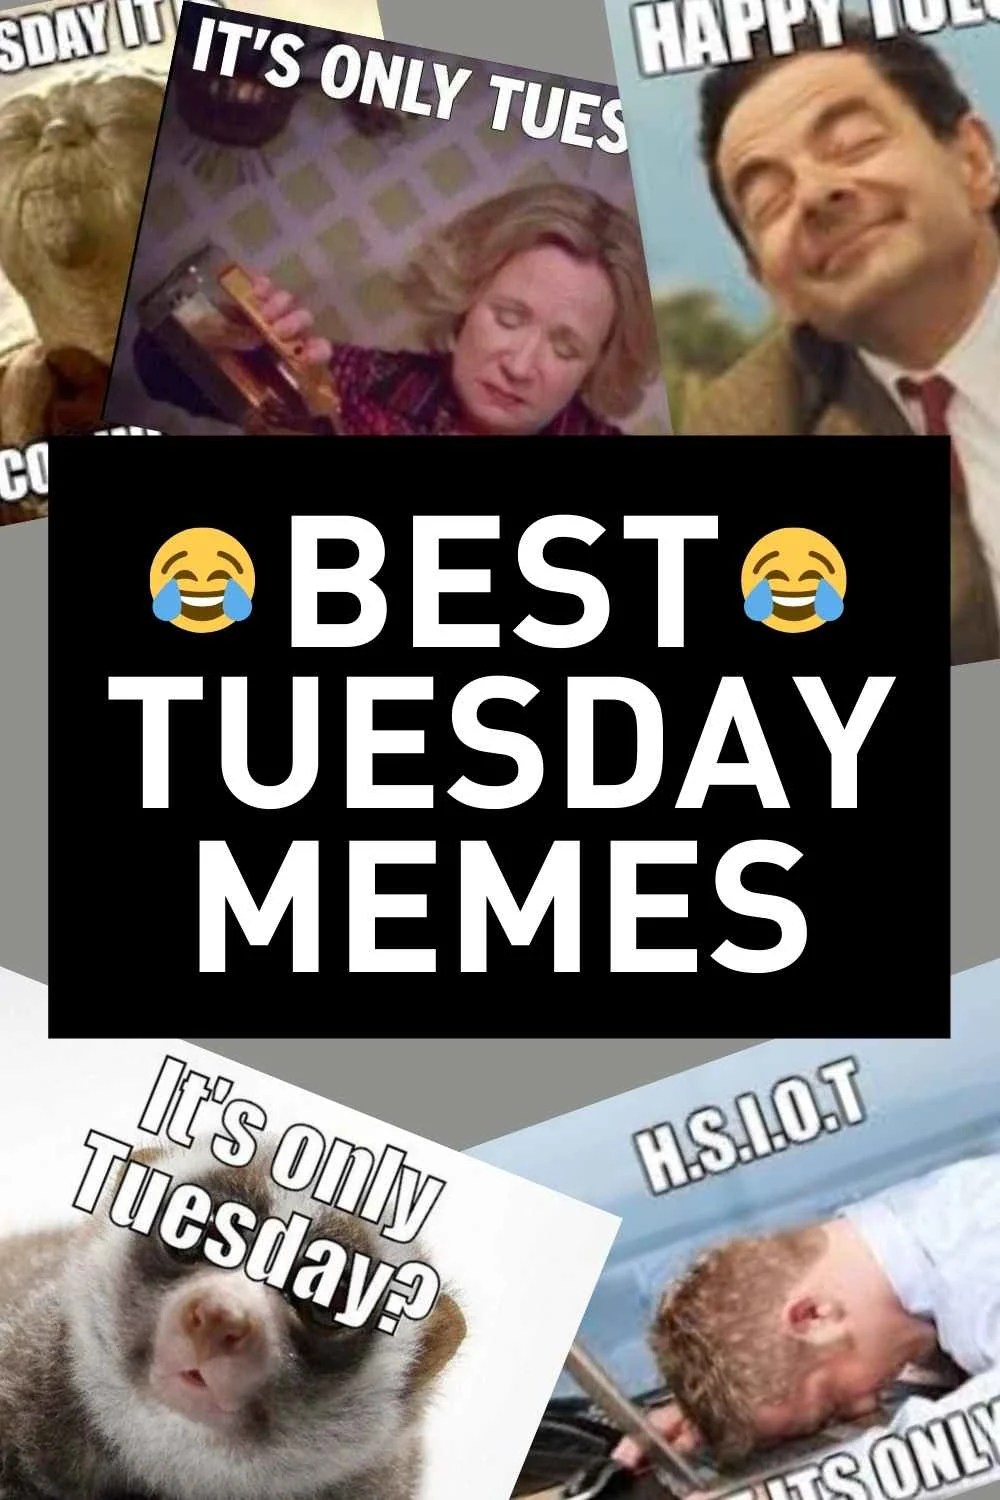 Hilarious Tuesday Memes : hilarious, tuesday, memes, Tuesday, Memes, Funny, Images, Share